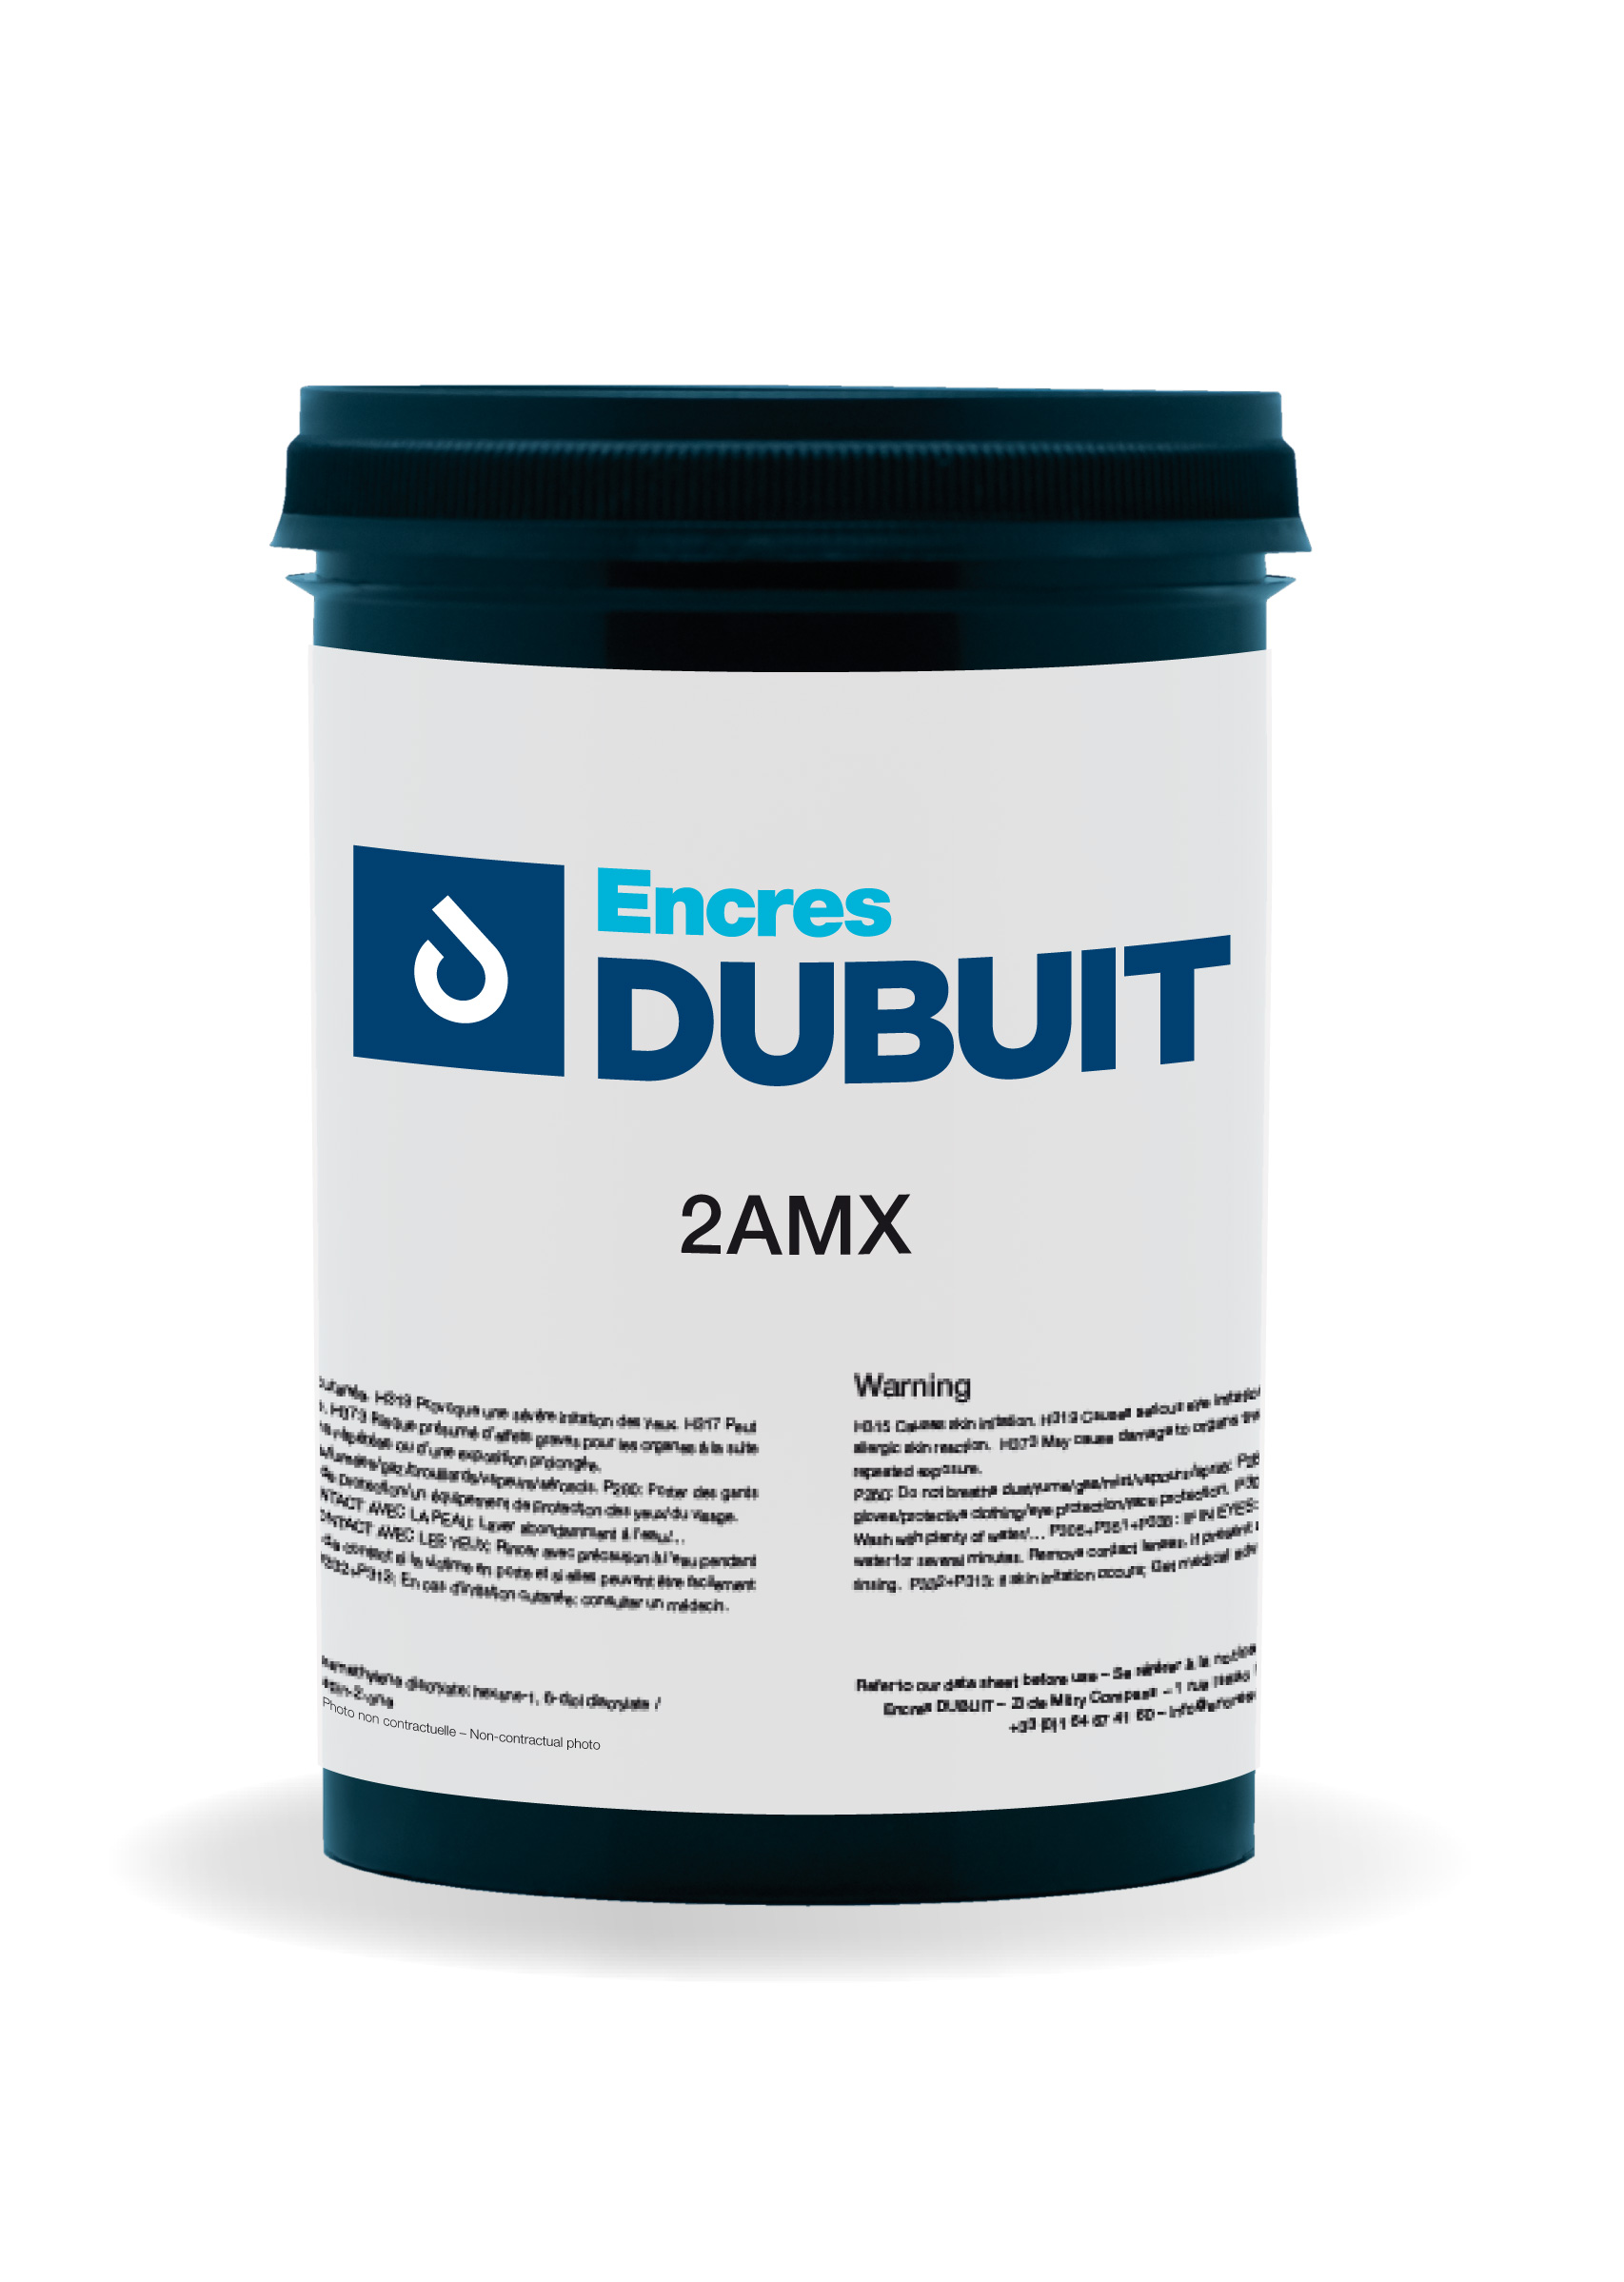 2AMX-UV Screen Printing Ink - DUBUIT